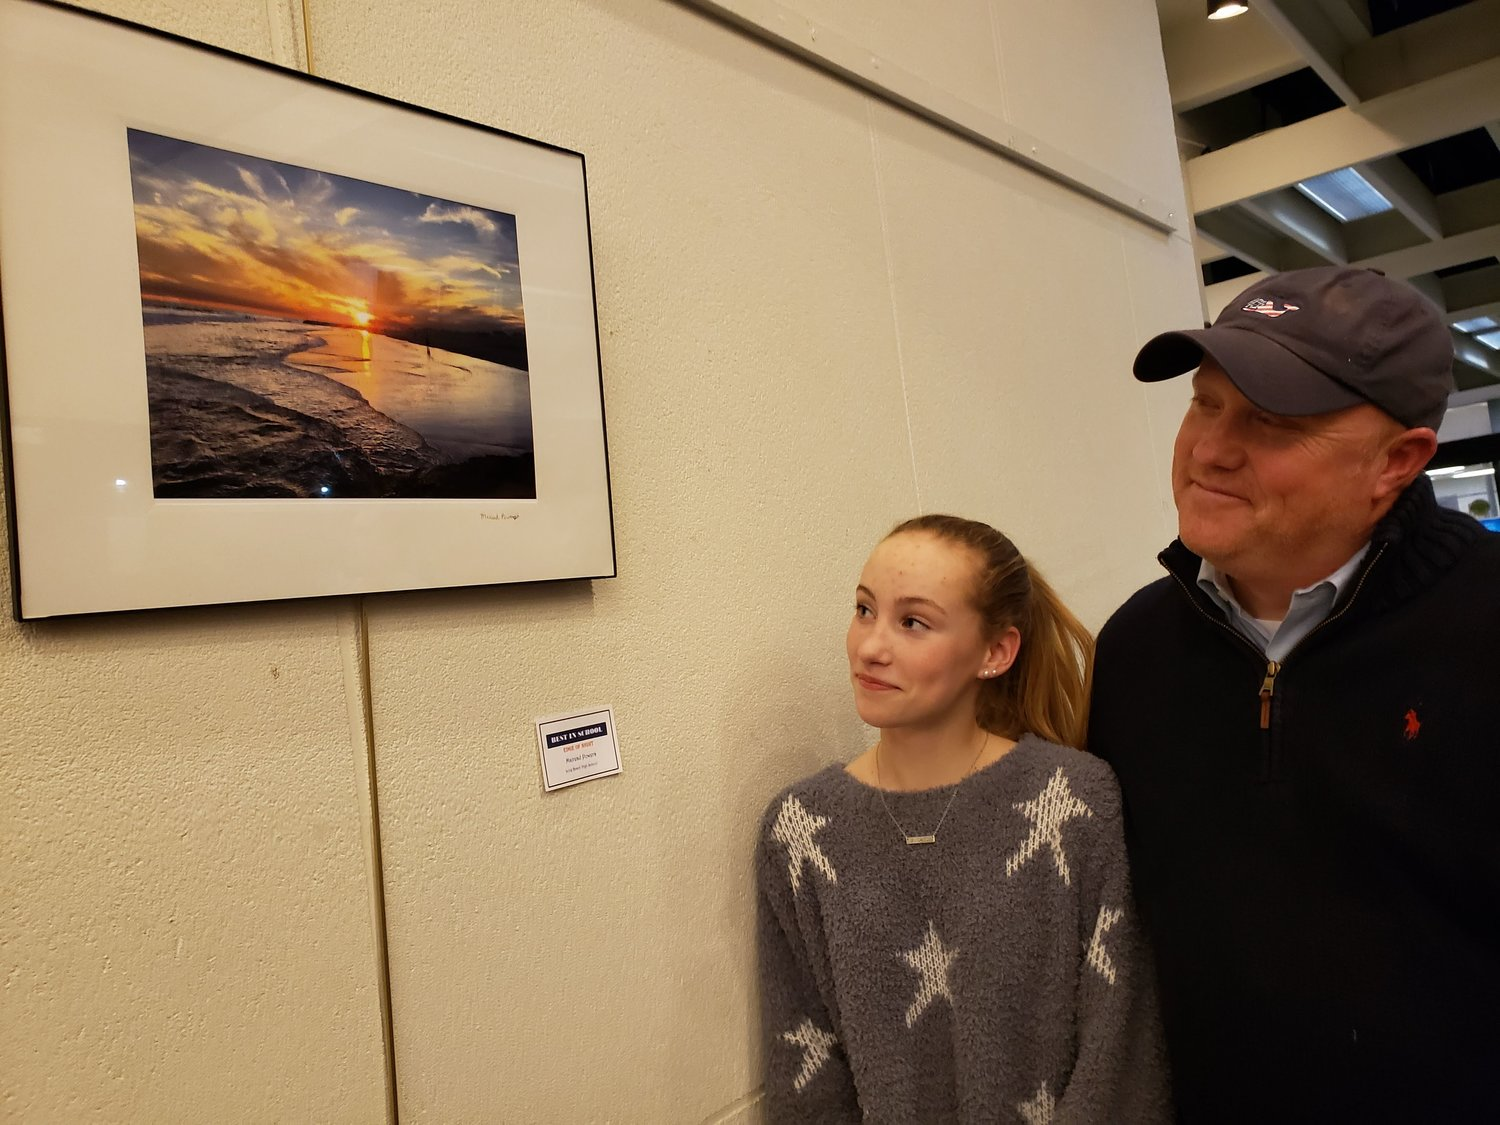 Long Beach High School junior Mairead Powers, 16, below, showed her father, Raymond Powers, her Best in Show photograph of a sunset.